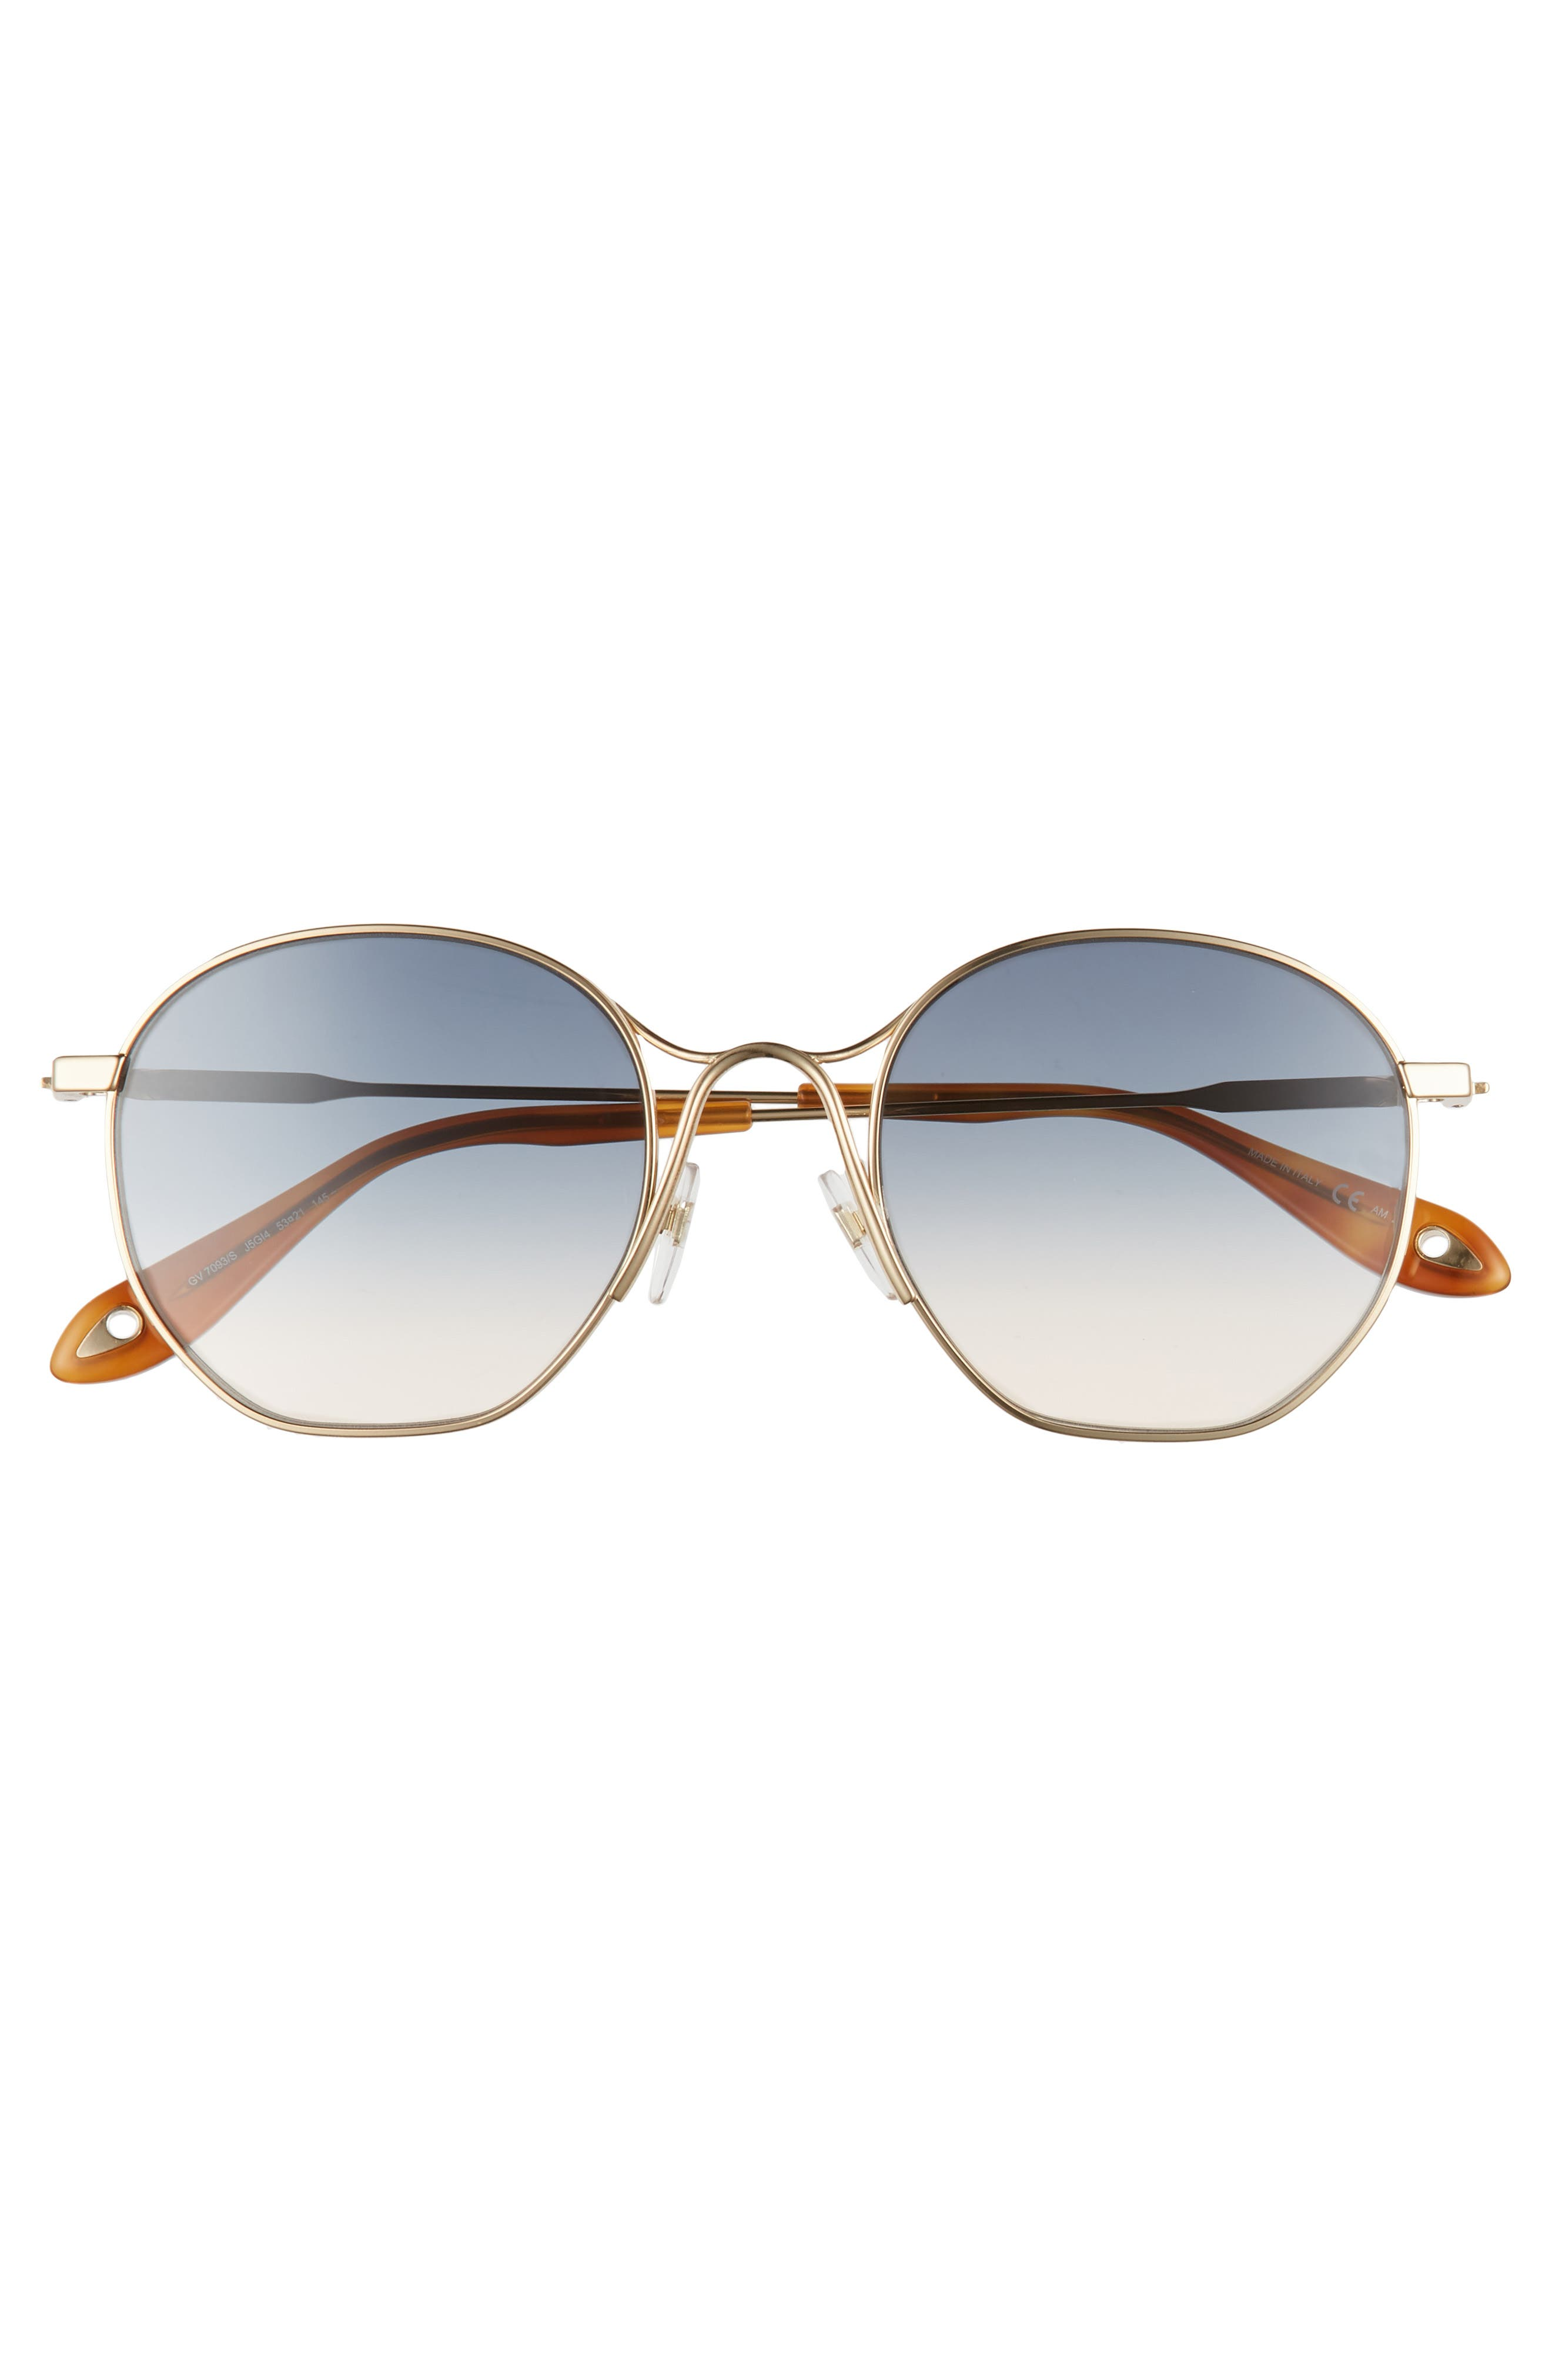 Alternate Image 3  - Givenchy 53mm Squared Round Metal Sunglasses